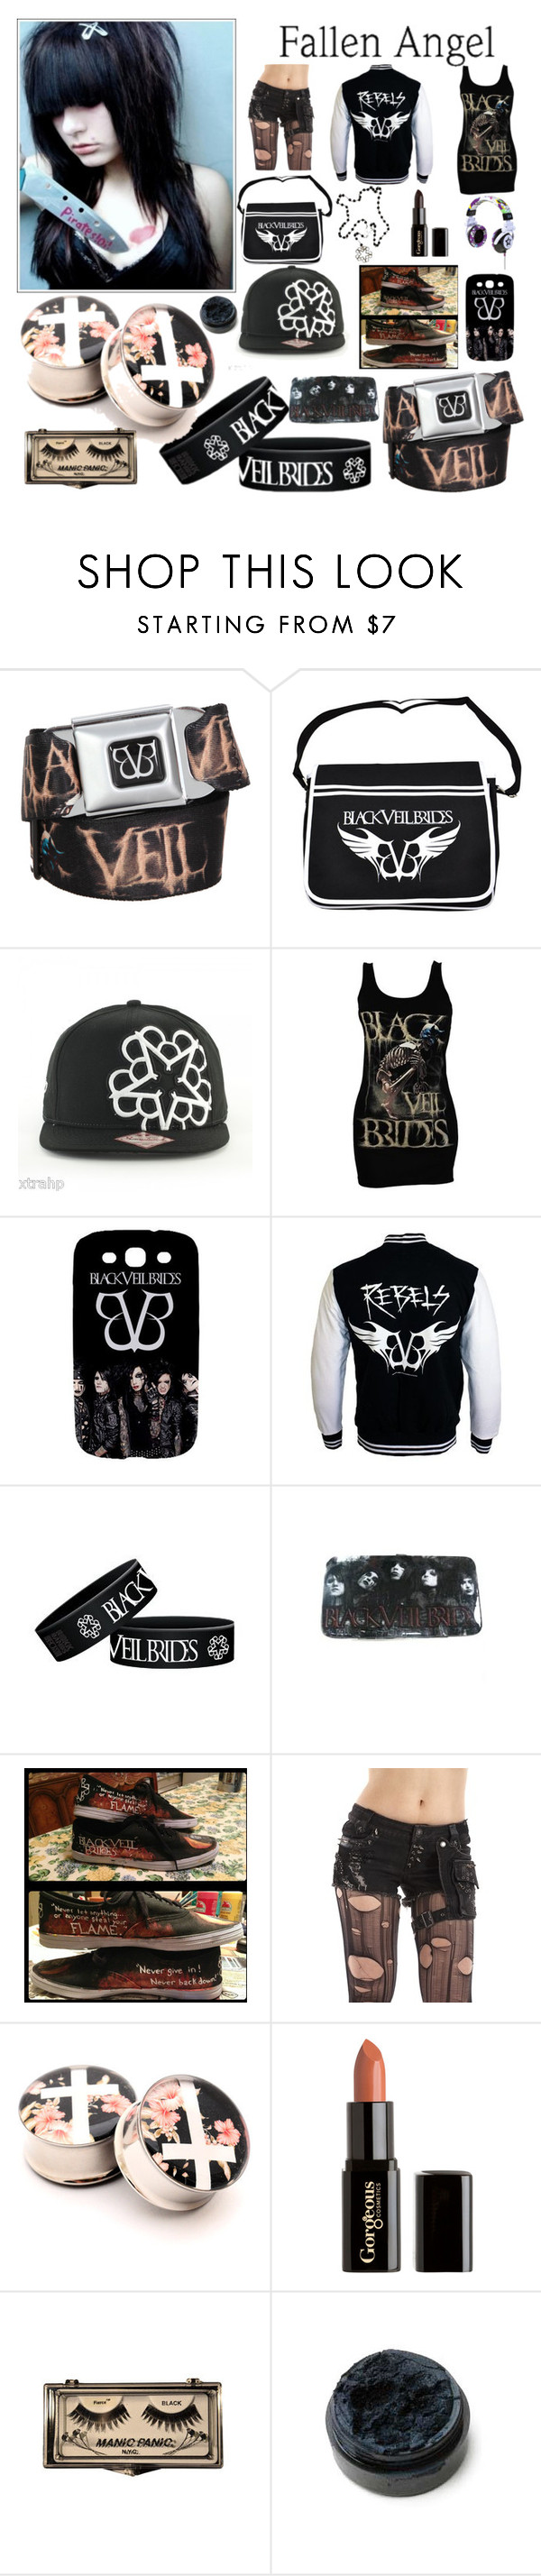 """""""Fallen Angel"""" by nekoprincess ❤ liked on Polyvore featuring Samsung, Gorgeous Cosmetics, Hёlls Bёlls, bvb, emo and scene"""